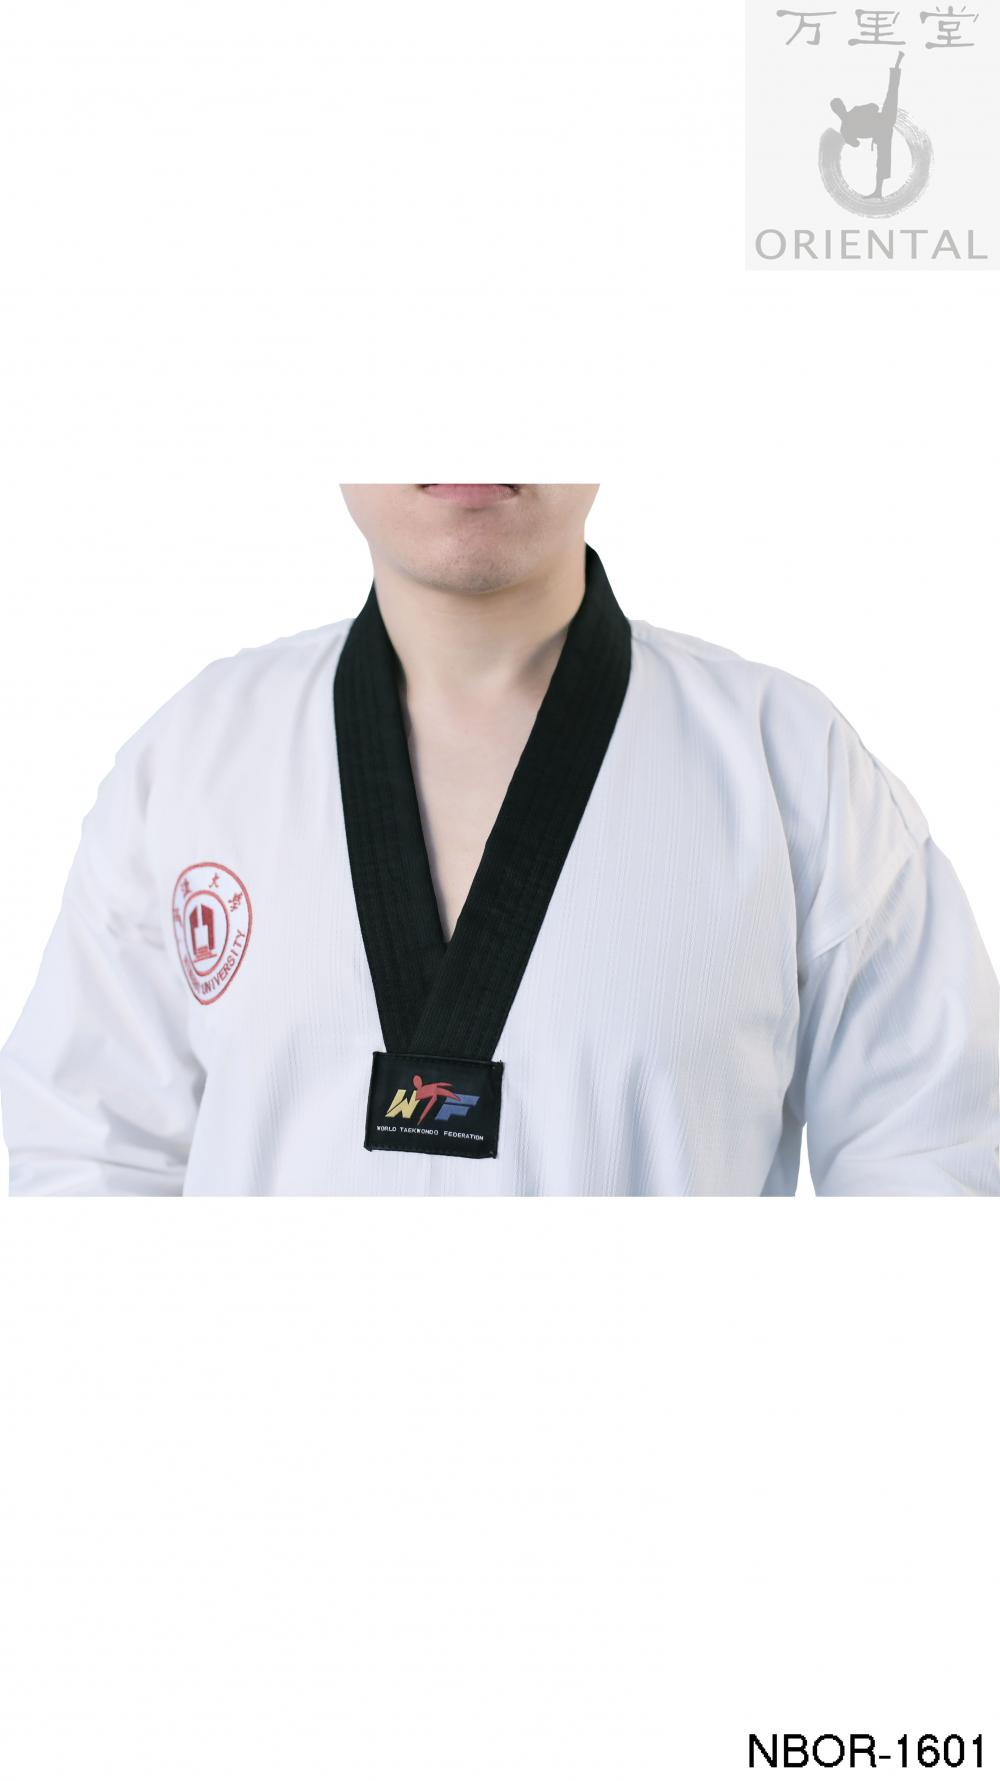 taekwondo balck collar clothing